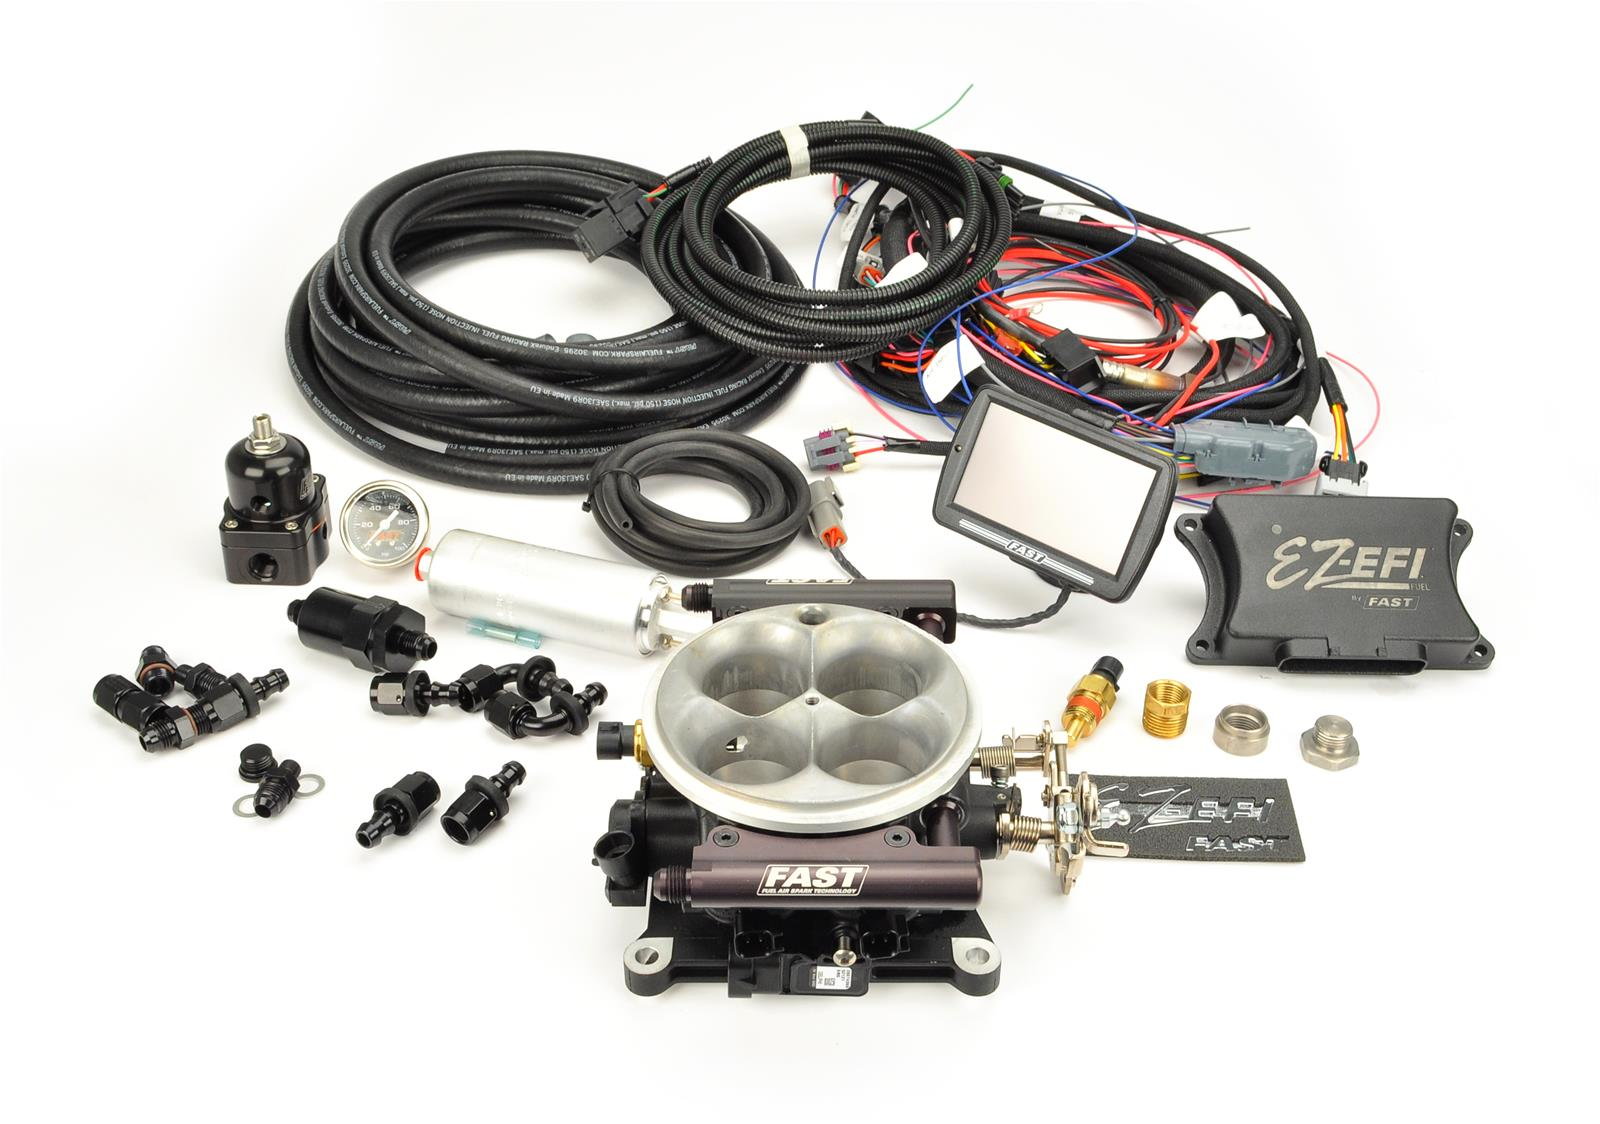 Ez Wiring Harness Thomas Bus on ez wiring battery, ez wiring horn, ez wiring headlight switch, ez go harness,